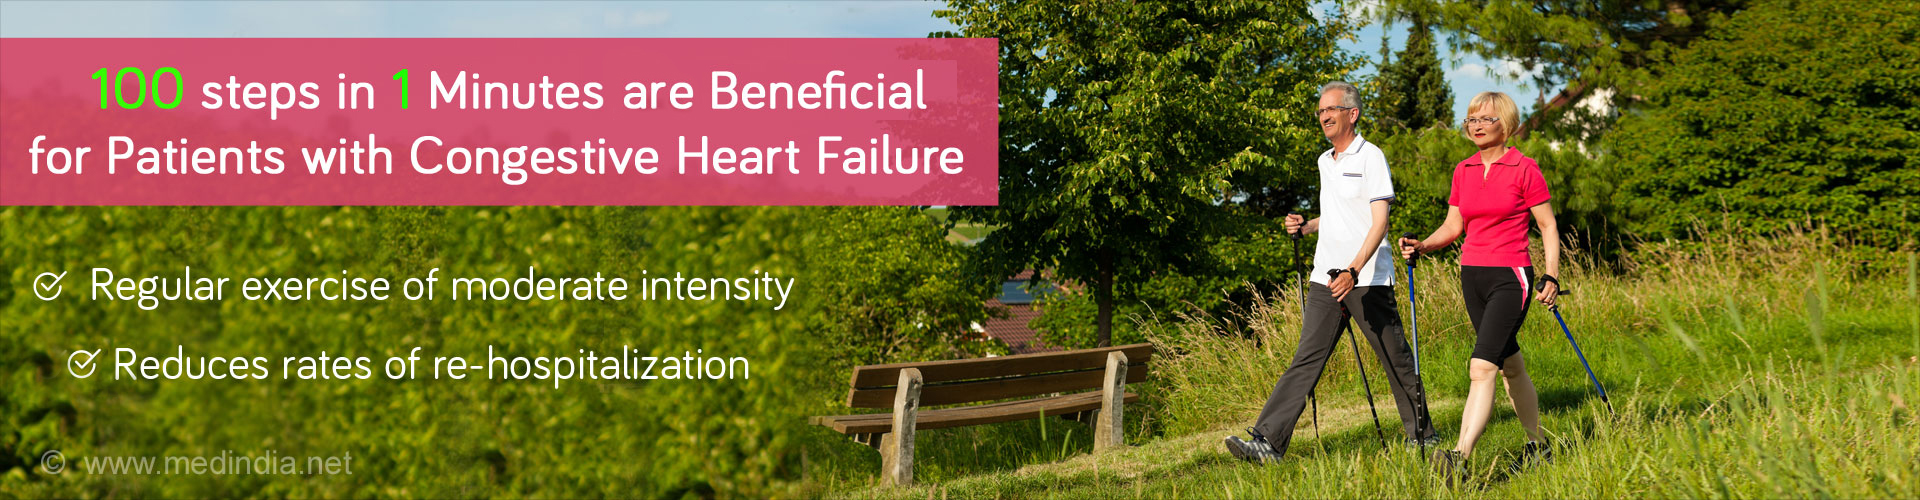 100 Steps in 1 Minute is Beneficial for Patients With Heart Failure